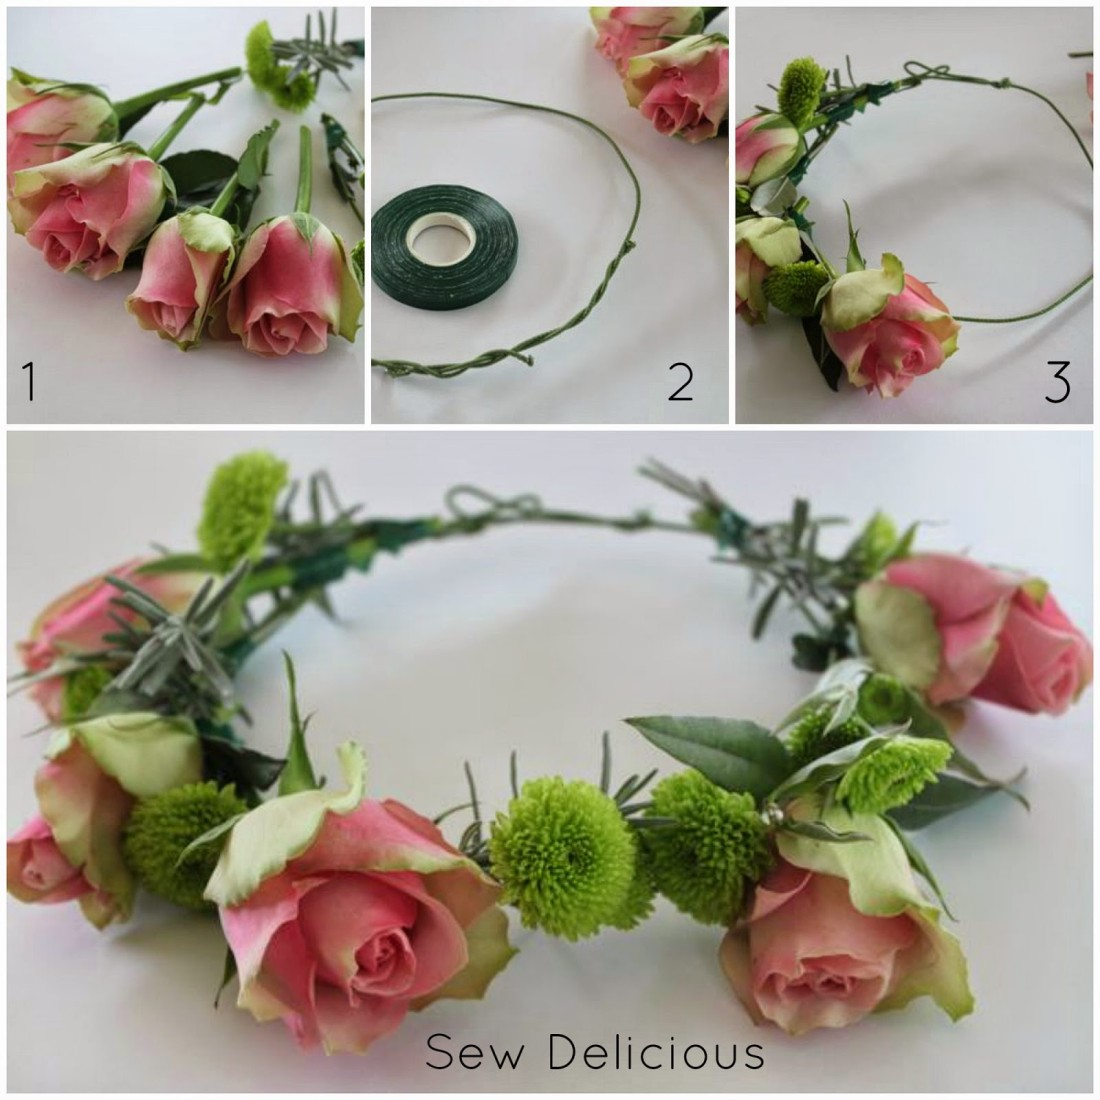 Diy floral crown tutorial sew delicious diy floral crown tutorial izmirmasajfo Images